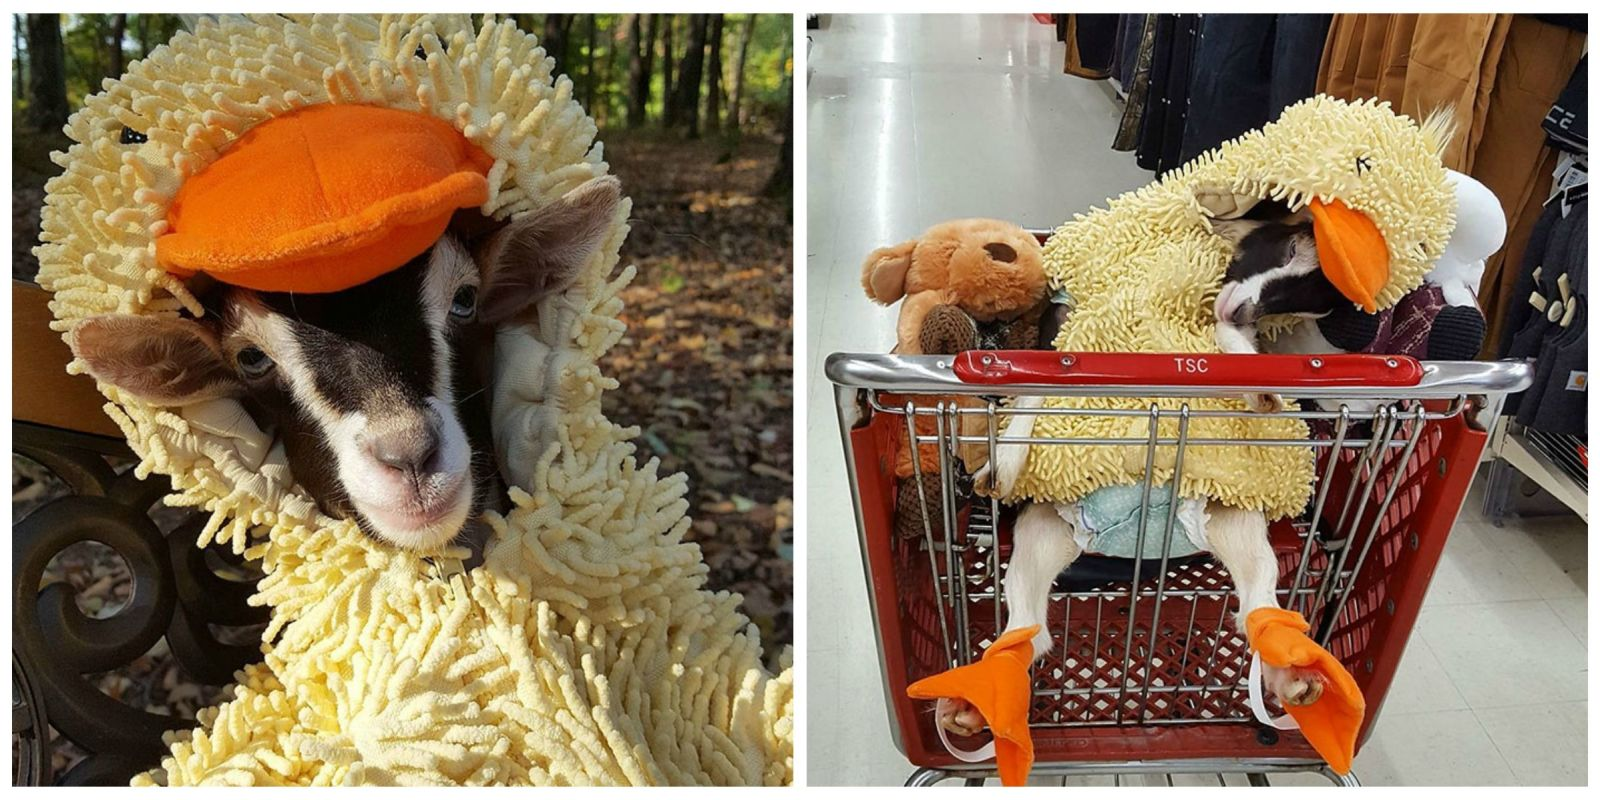 This Rescue Goat Wears A Duck Costume To Calm Down Goats Of Anarchy - Rescue goat suffers anxiety calms duck costume